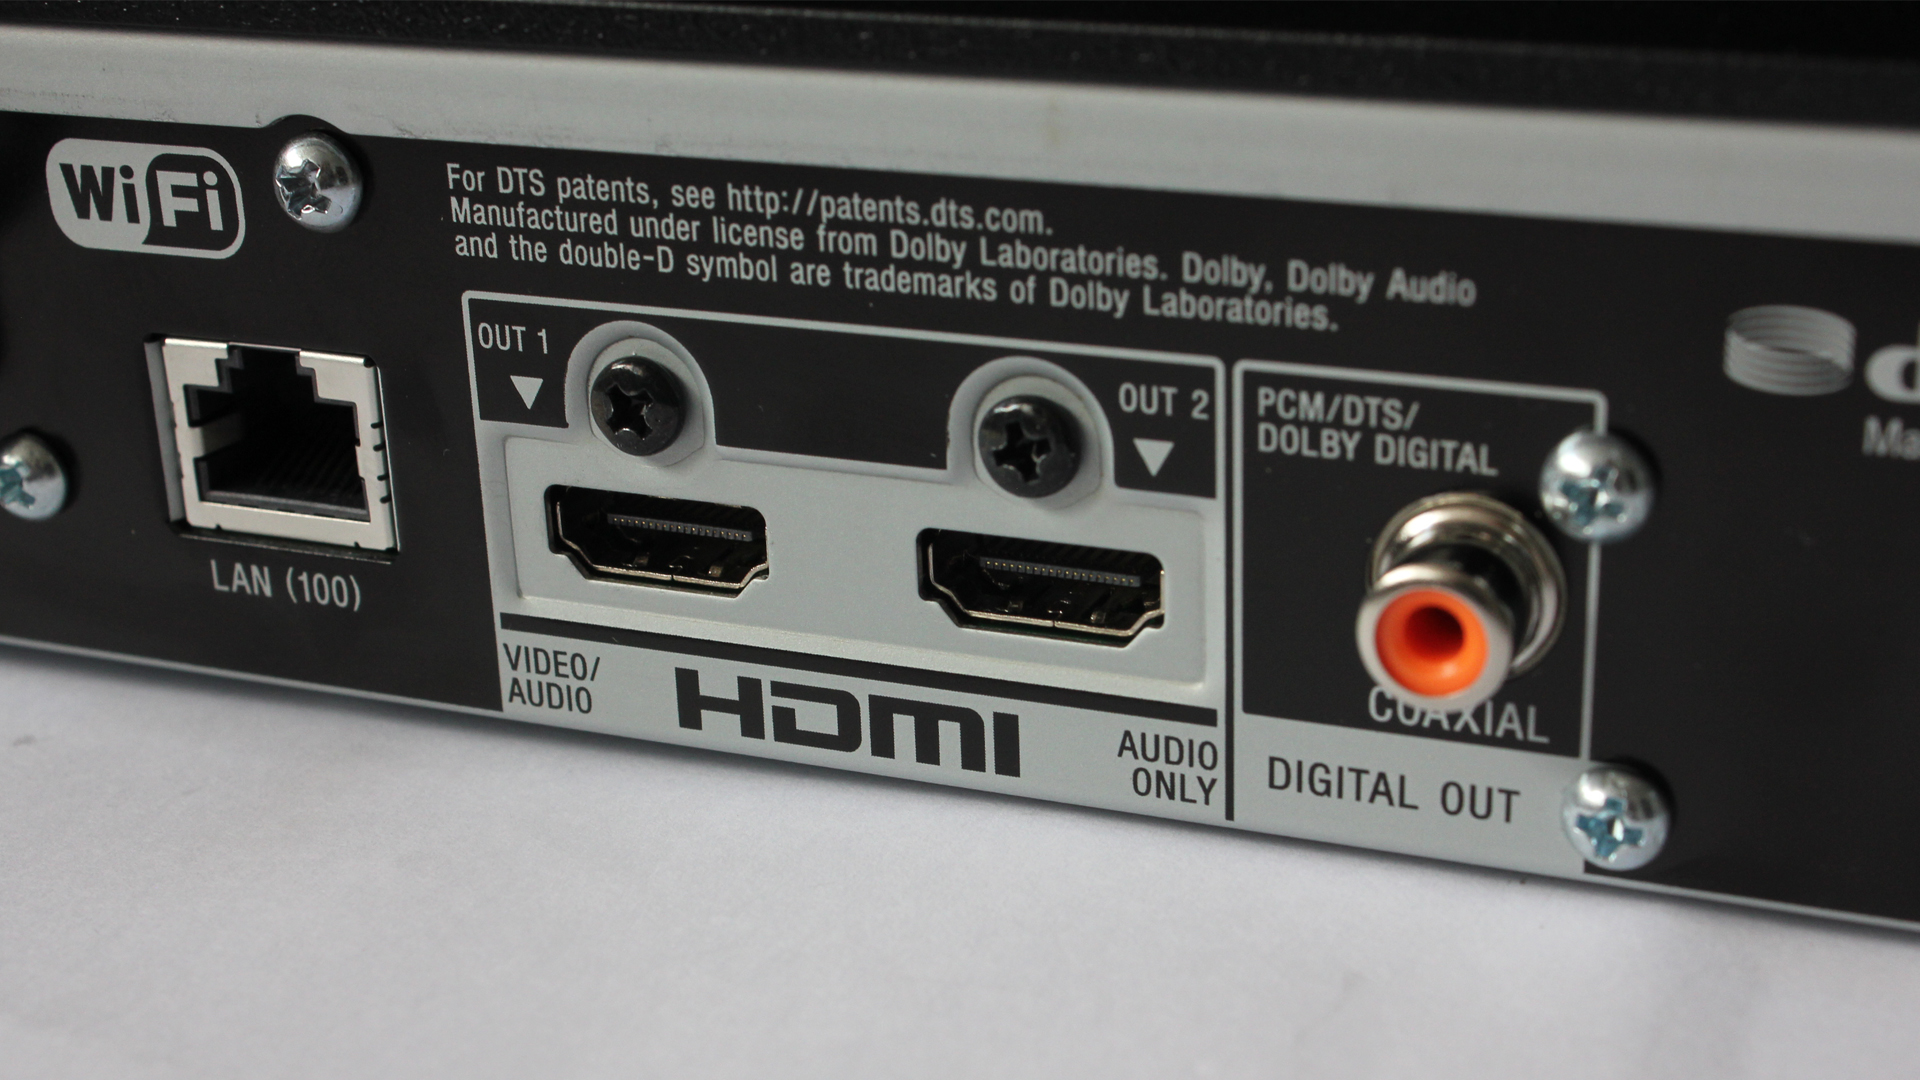 The player can output its sound and video through separate HDMI ports